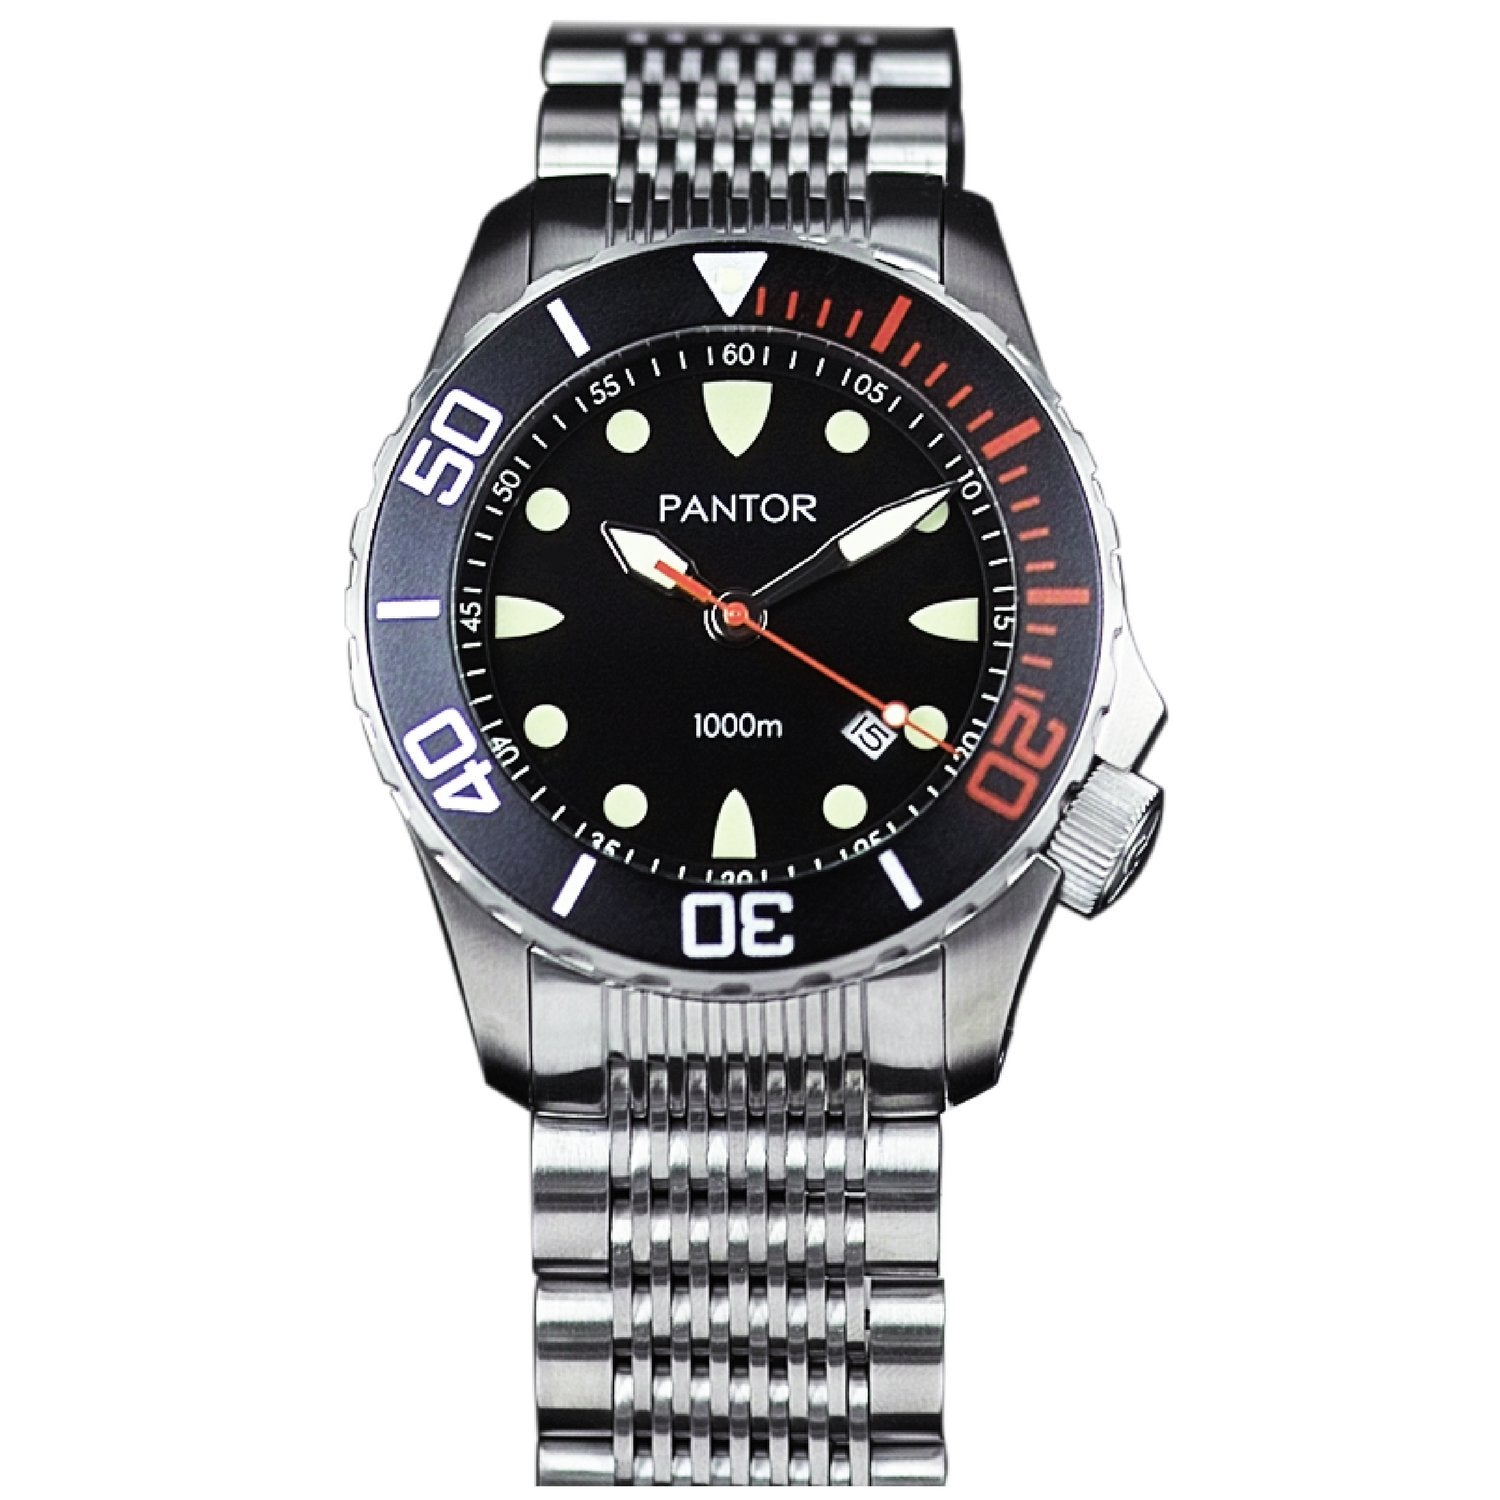 Pantor Seahorse Black Bezel Automatic Divers Watch 1000M